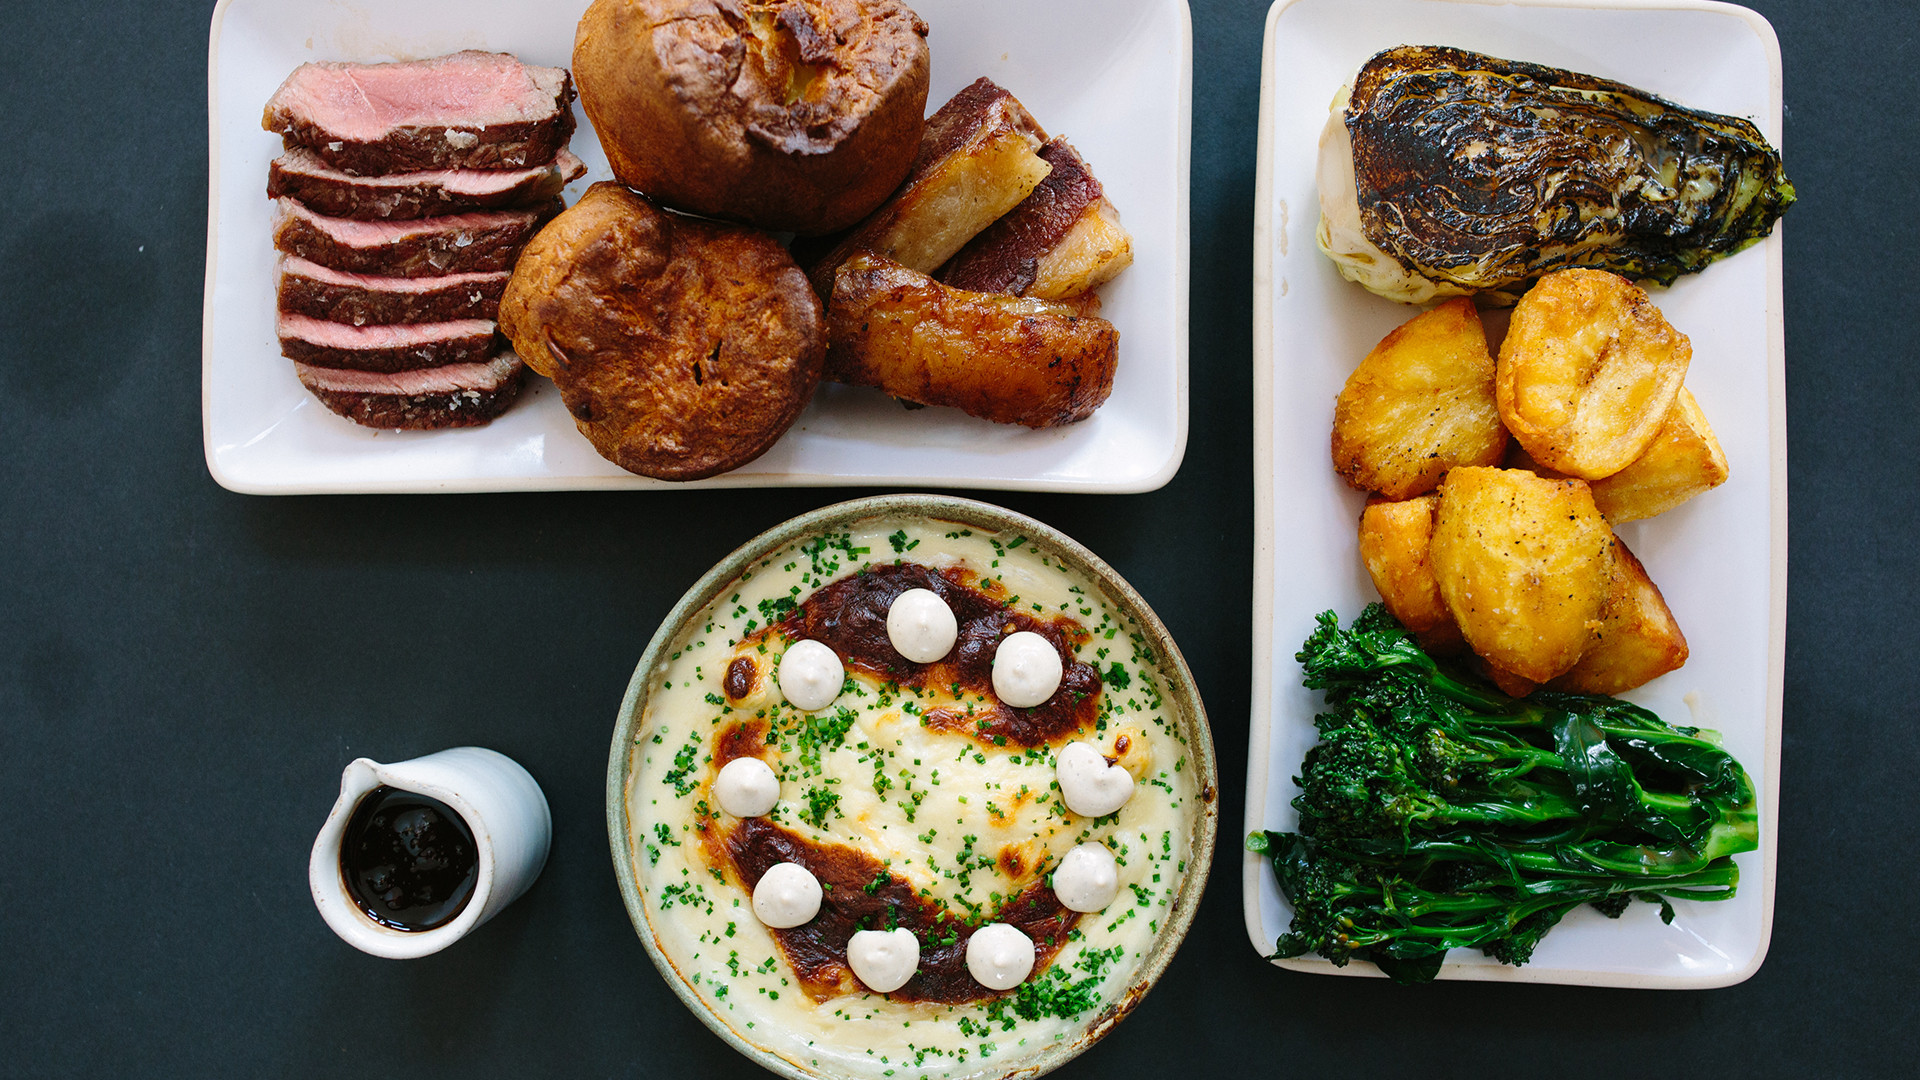 London's best Sunday roast – 12:51